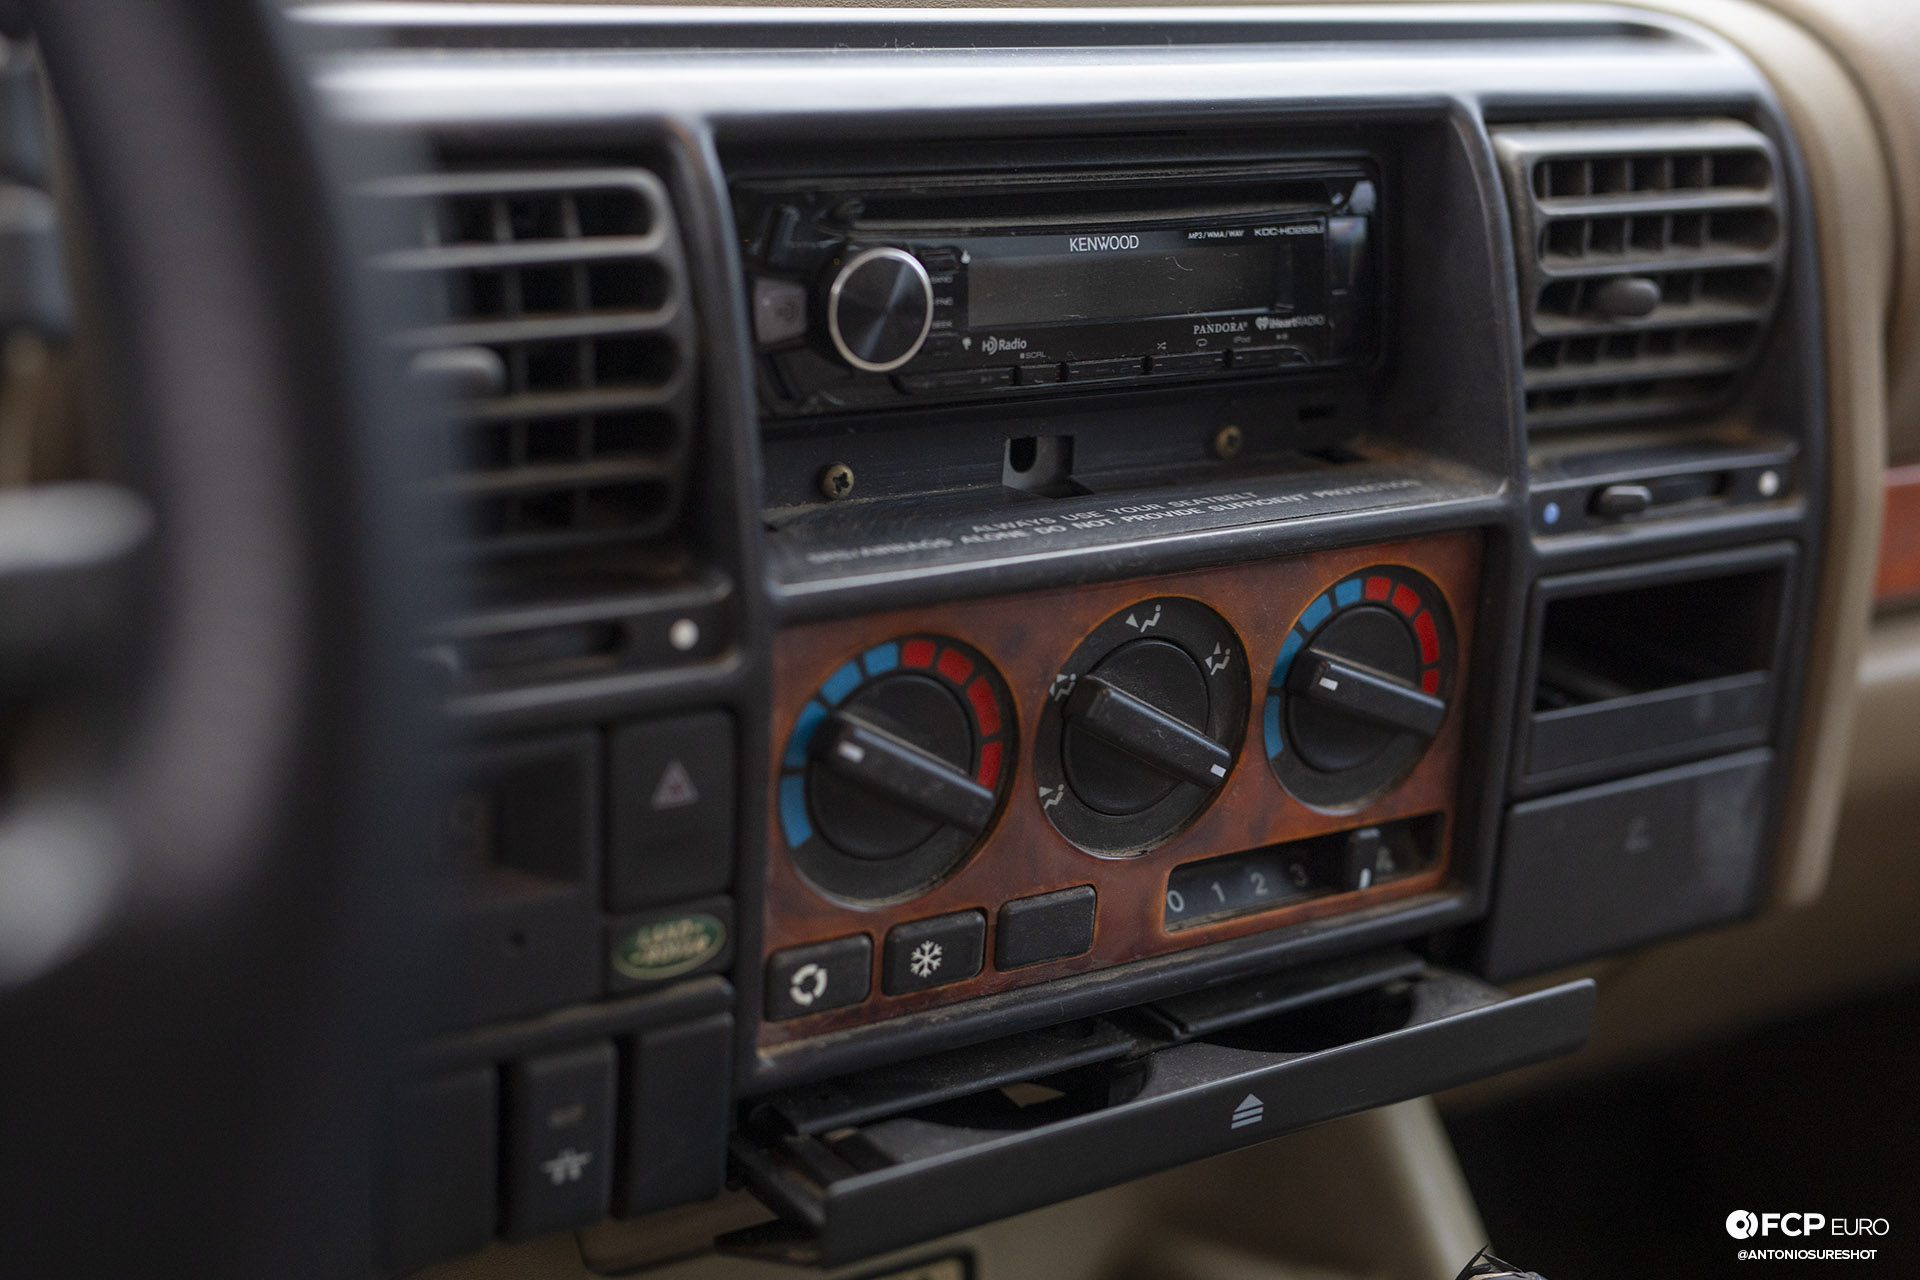 Land Rover Discovery SD Kenwood EOSR1703